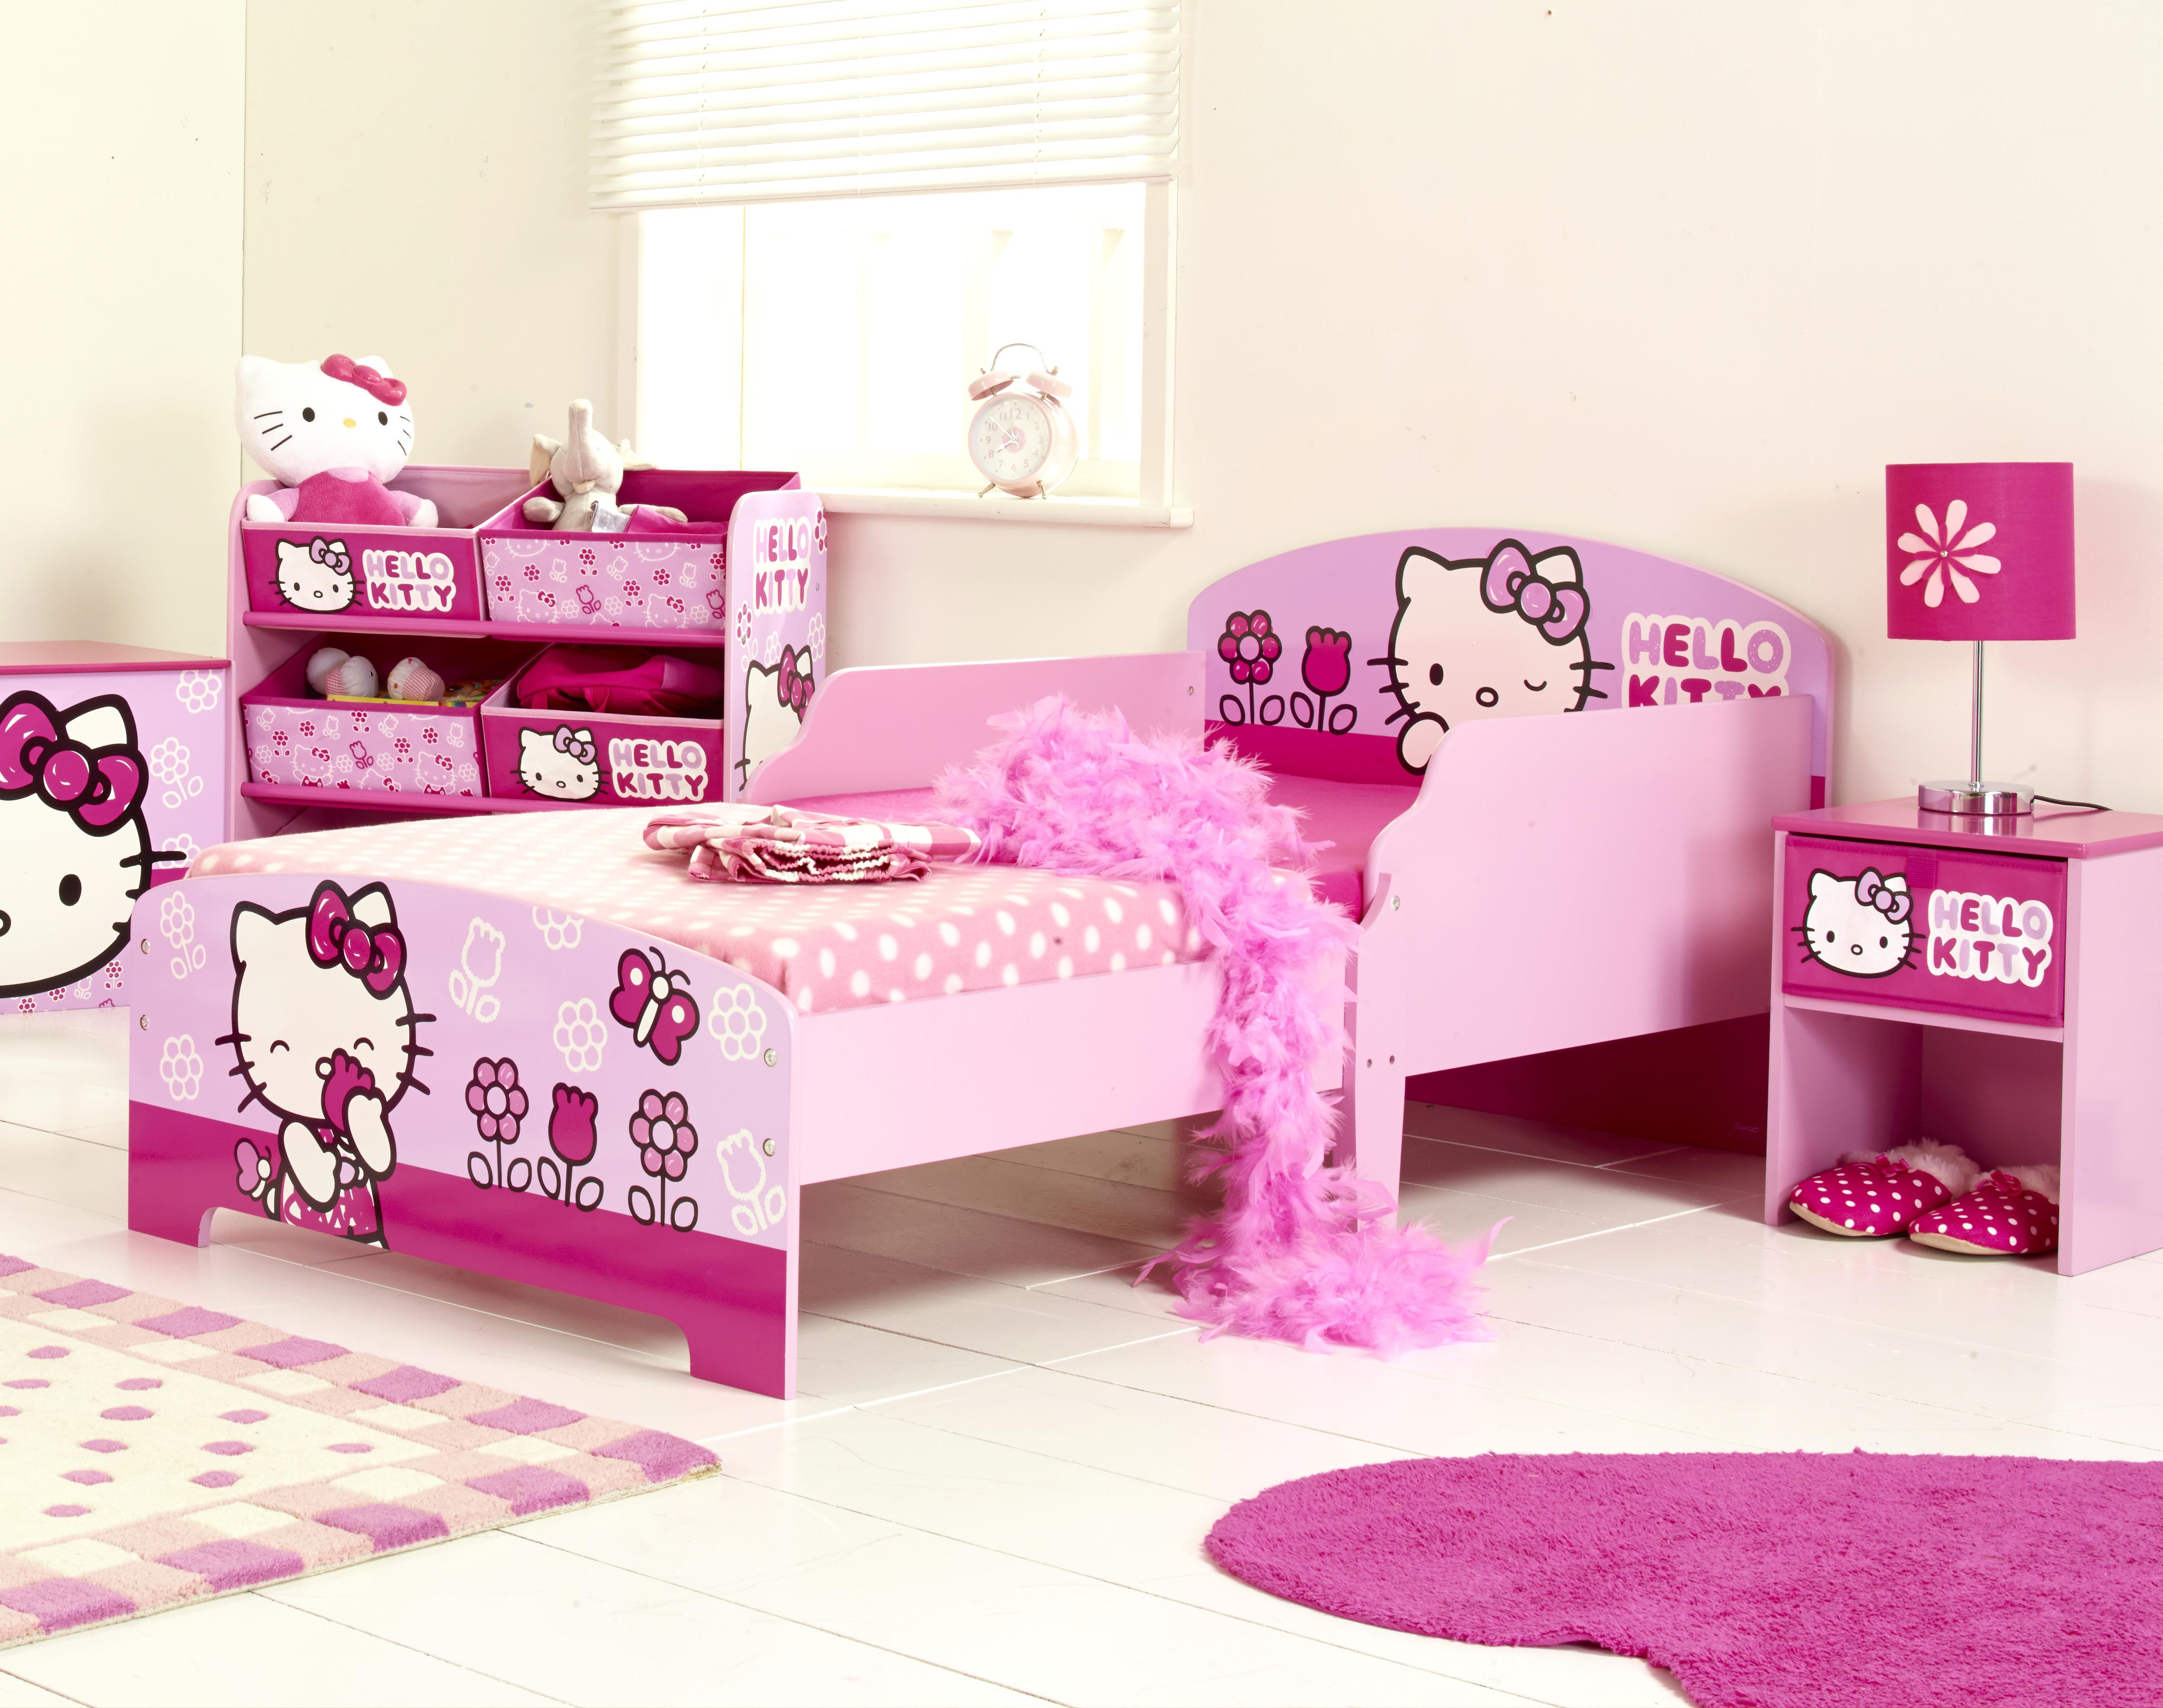 Hello Kitty Bedroom Stuff Home Design